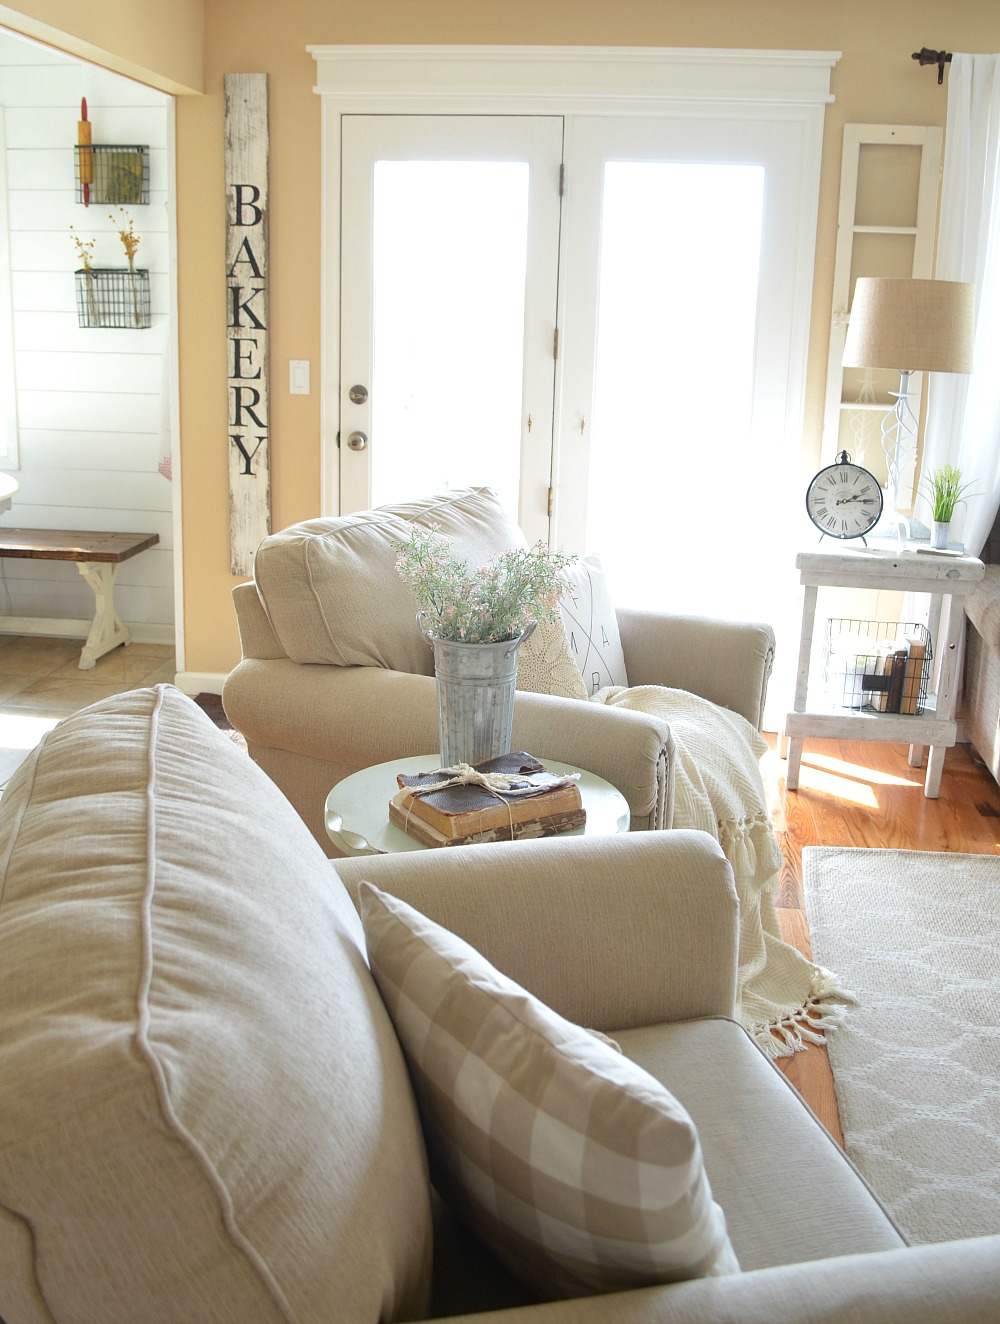 Refreshed Modern Farmhouse Living Room - Little Vintage Nest on Curtains For Farmhouse Living Room  id=47297